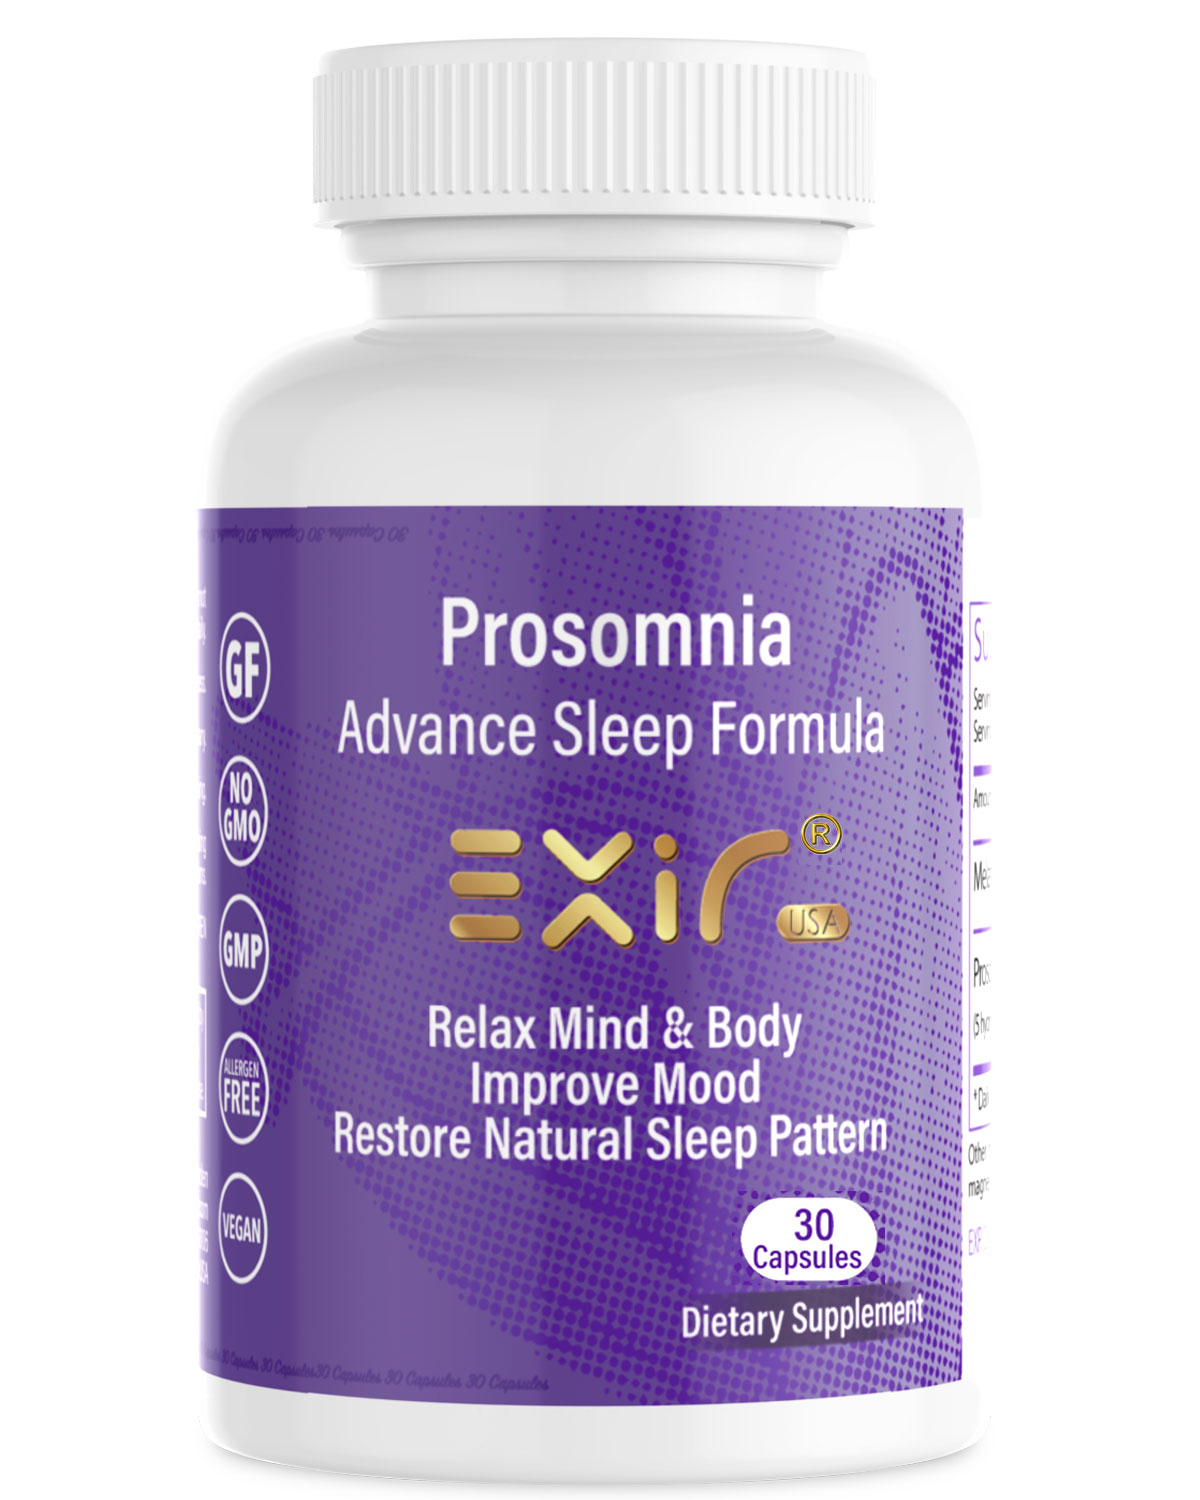 Prosomnia Advanced Sleep Formula, 30 Capsules